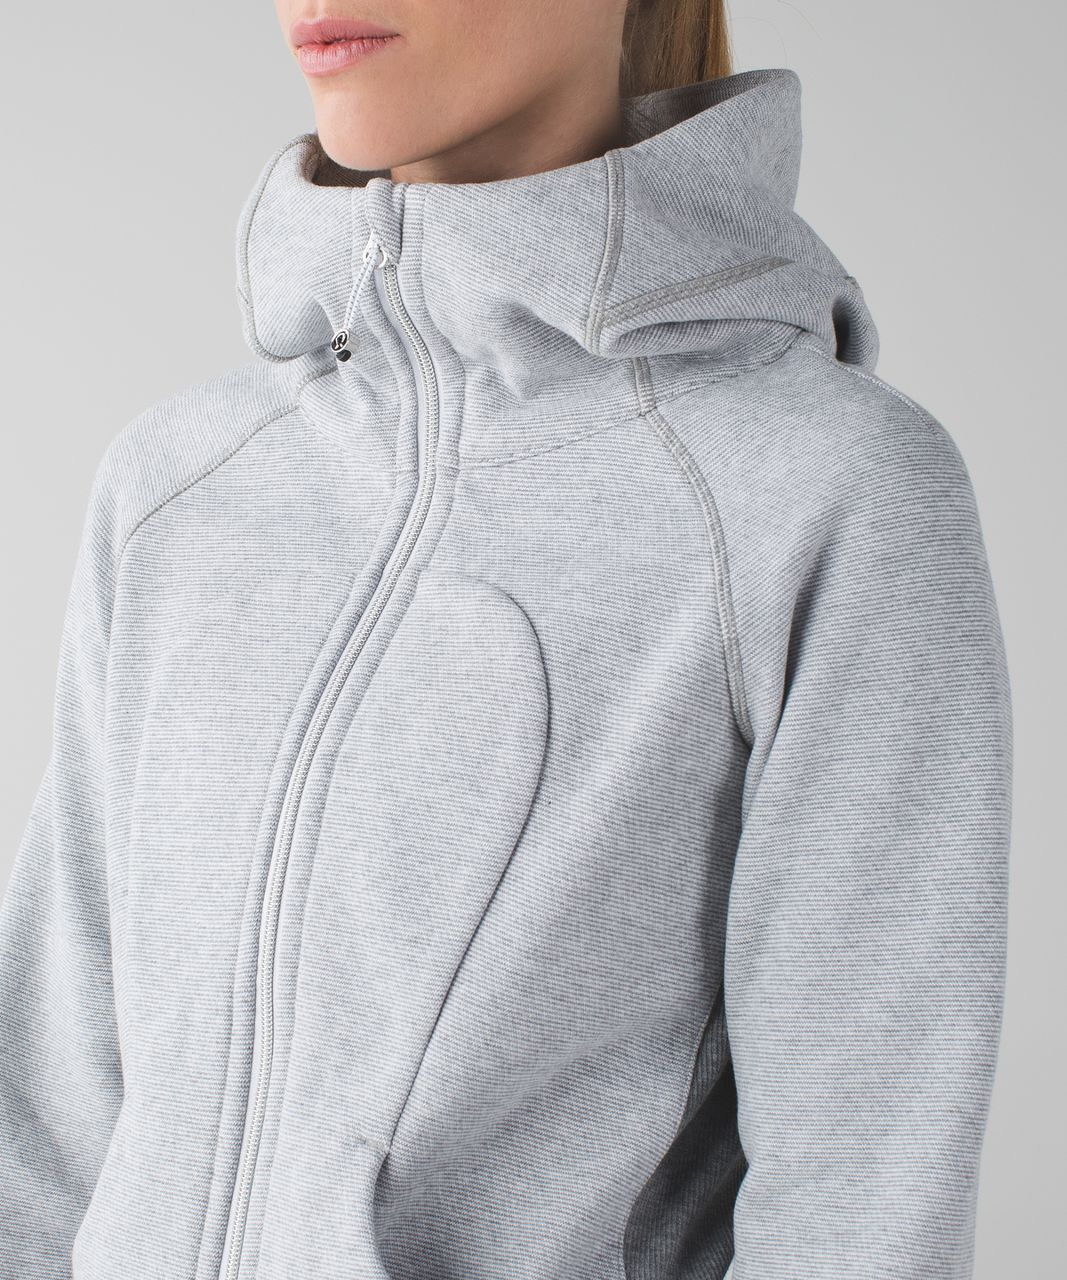 Lululemon Scuba Hoodie III - Wee Stripe White Heathered Medium Grey / Heathered Medium Grey